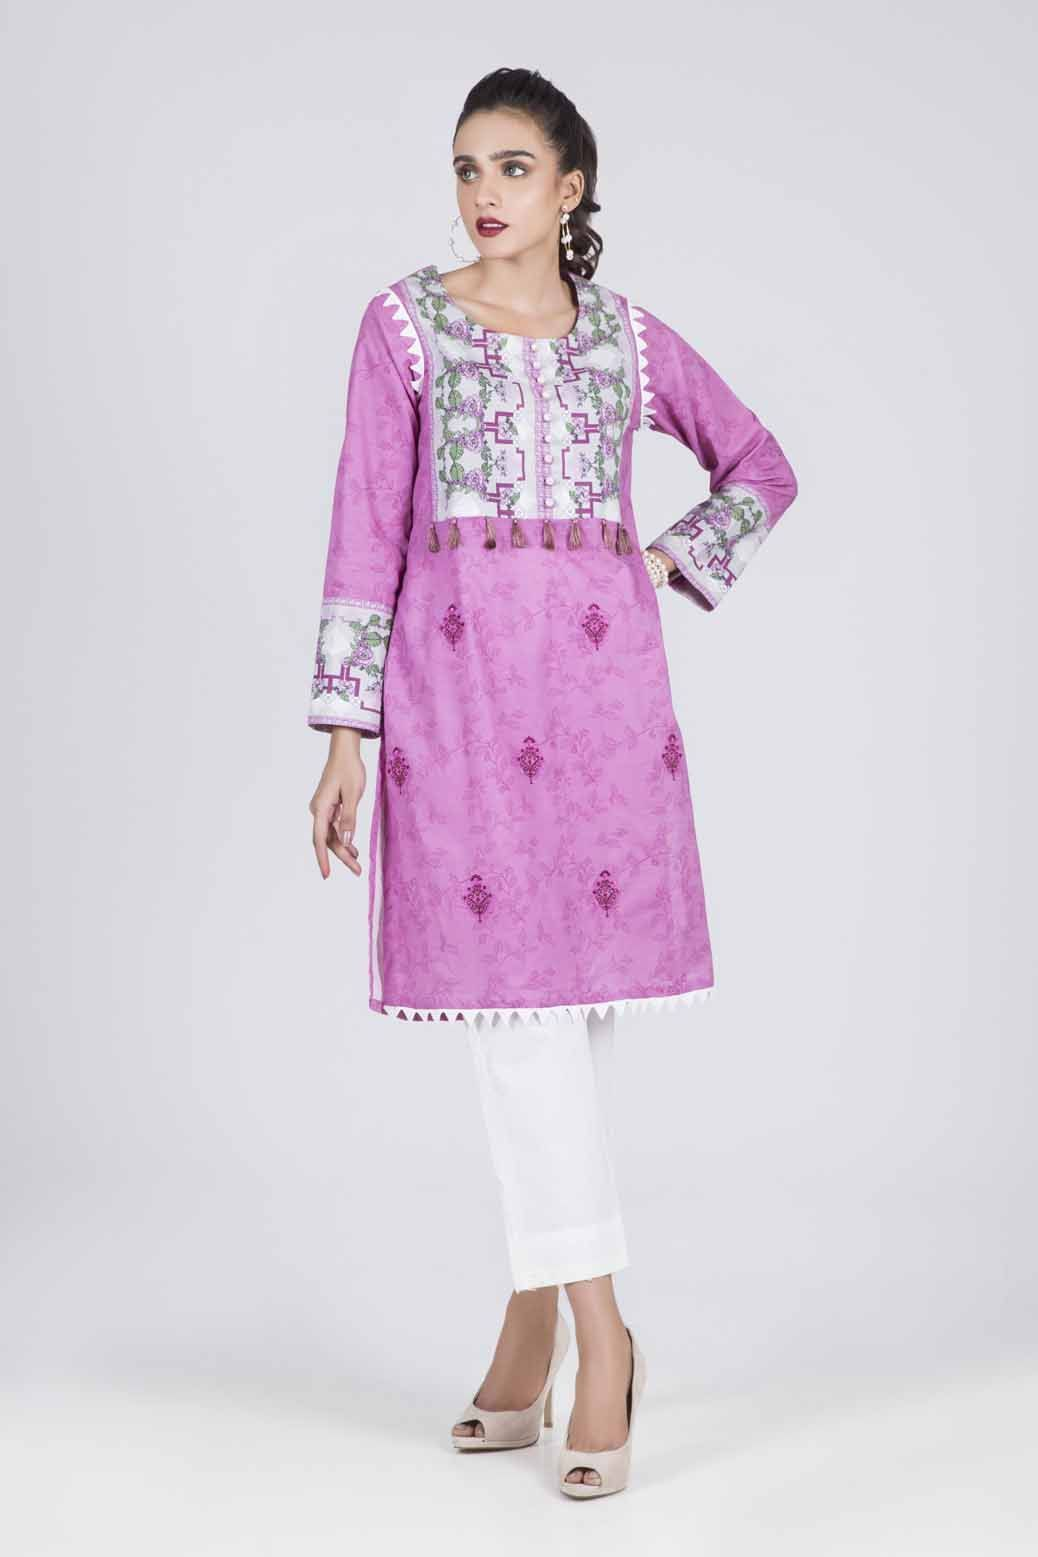 Bonanza Satrangi - PURPLE ROSEY - 1 PC - RWT91P005